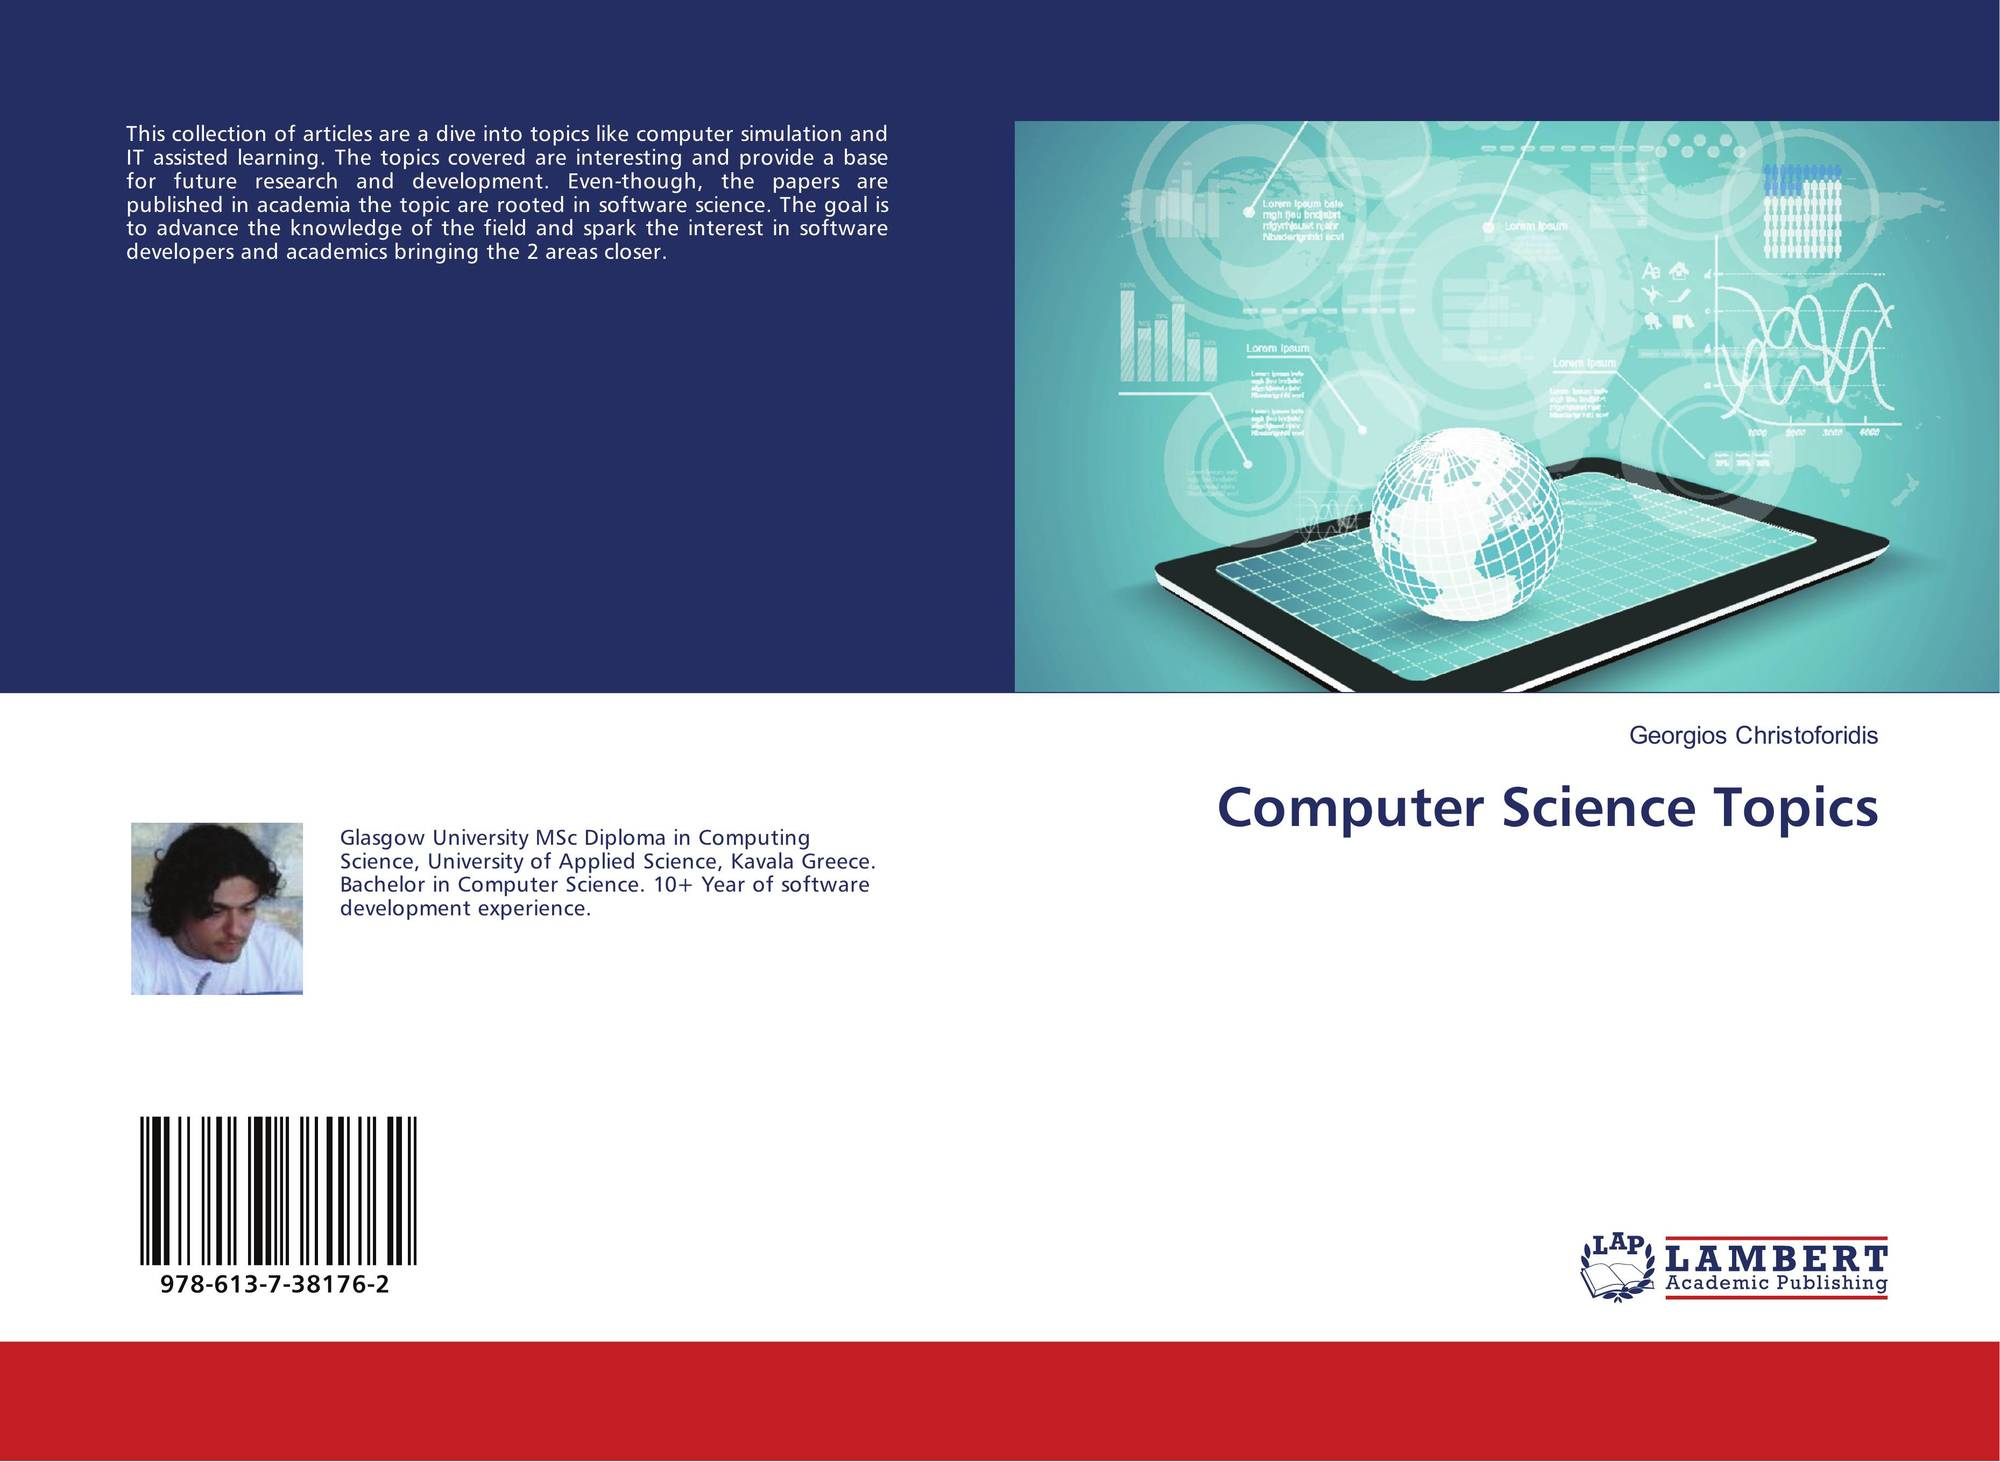 Computer Science Topics, 978-613-7-38176-2, 6137381765